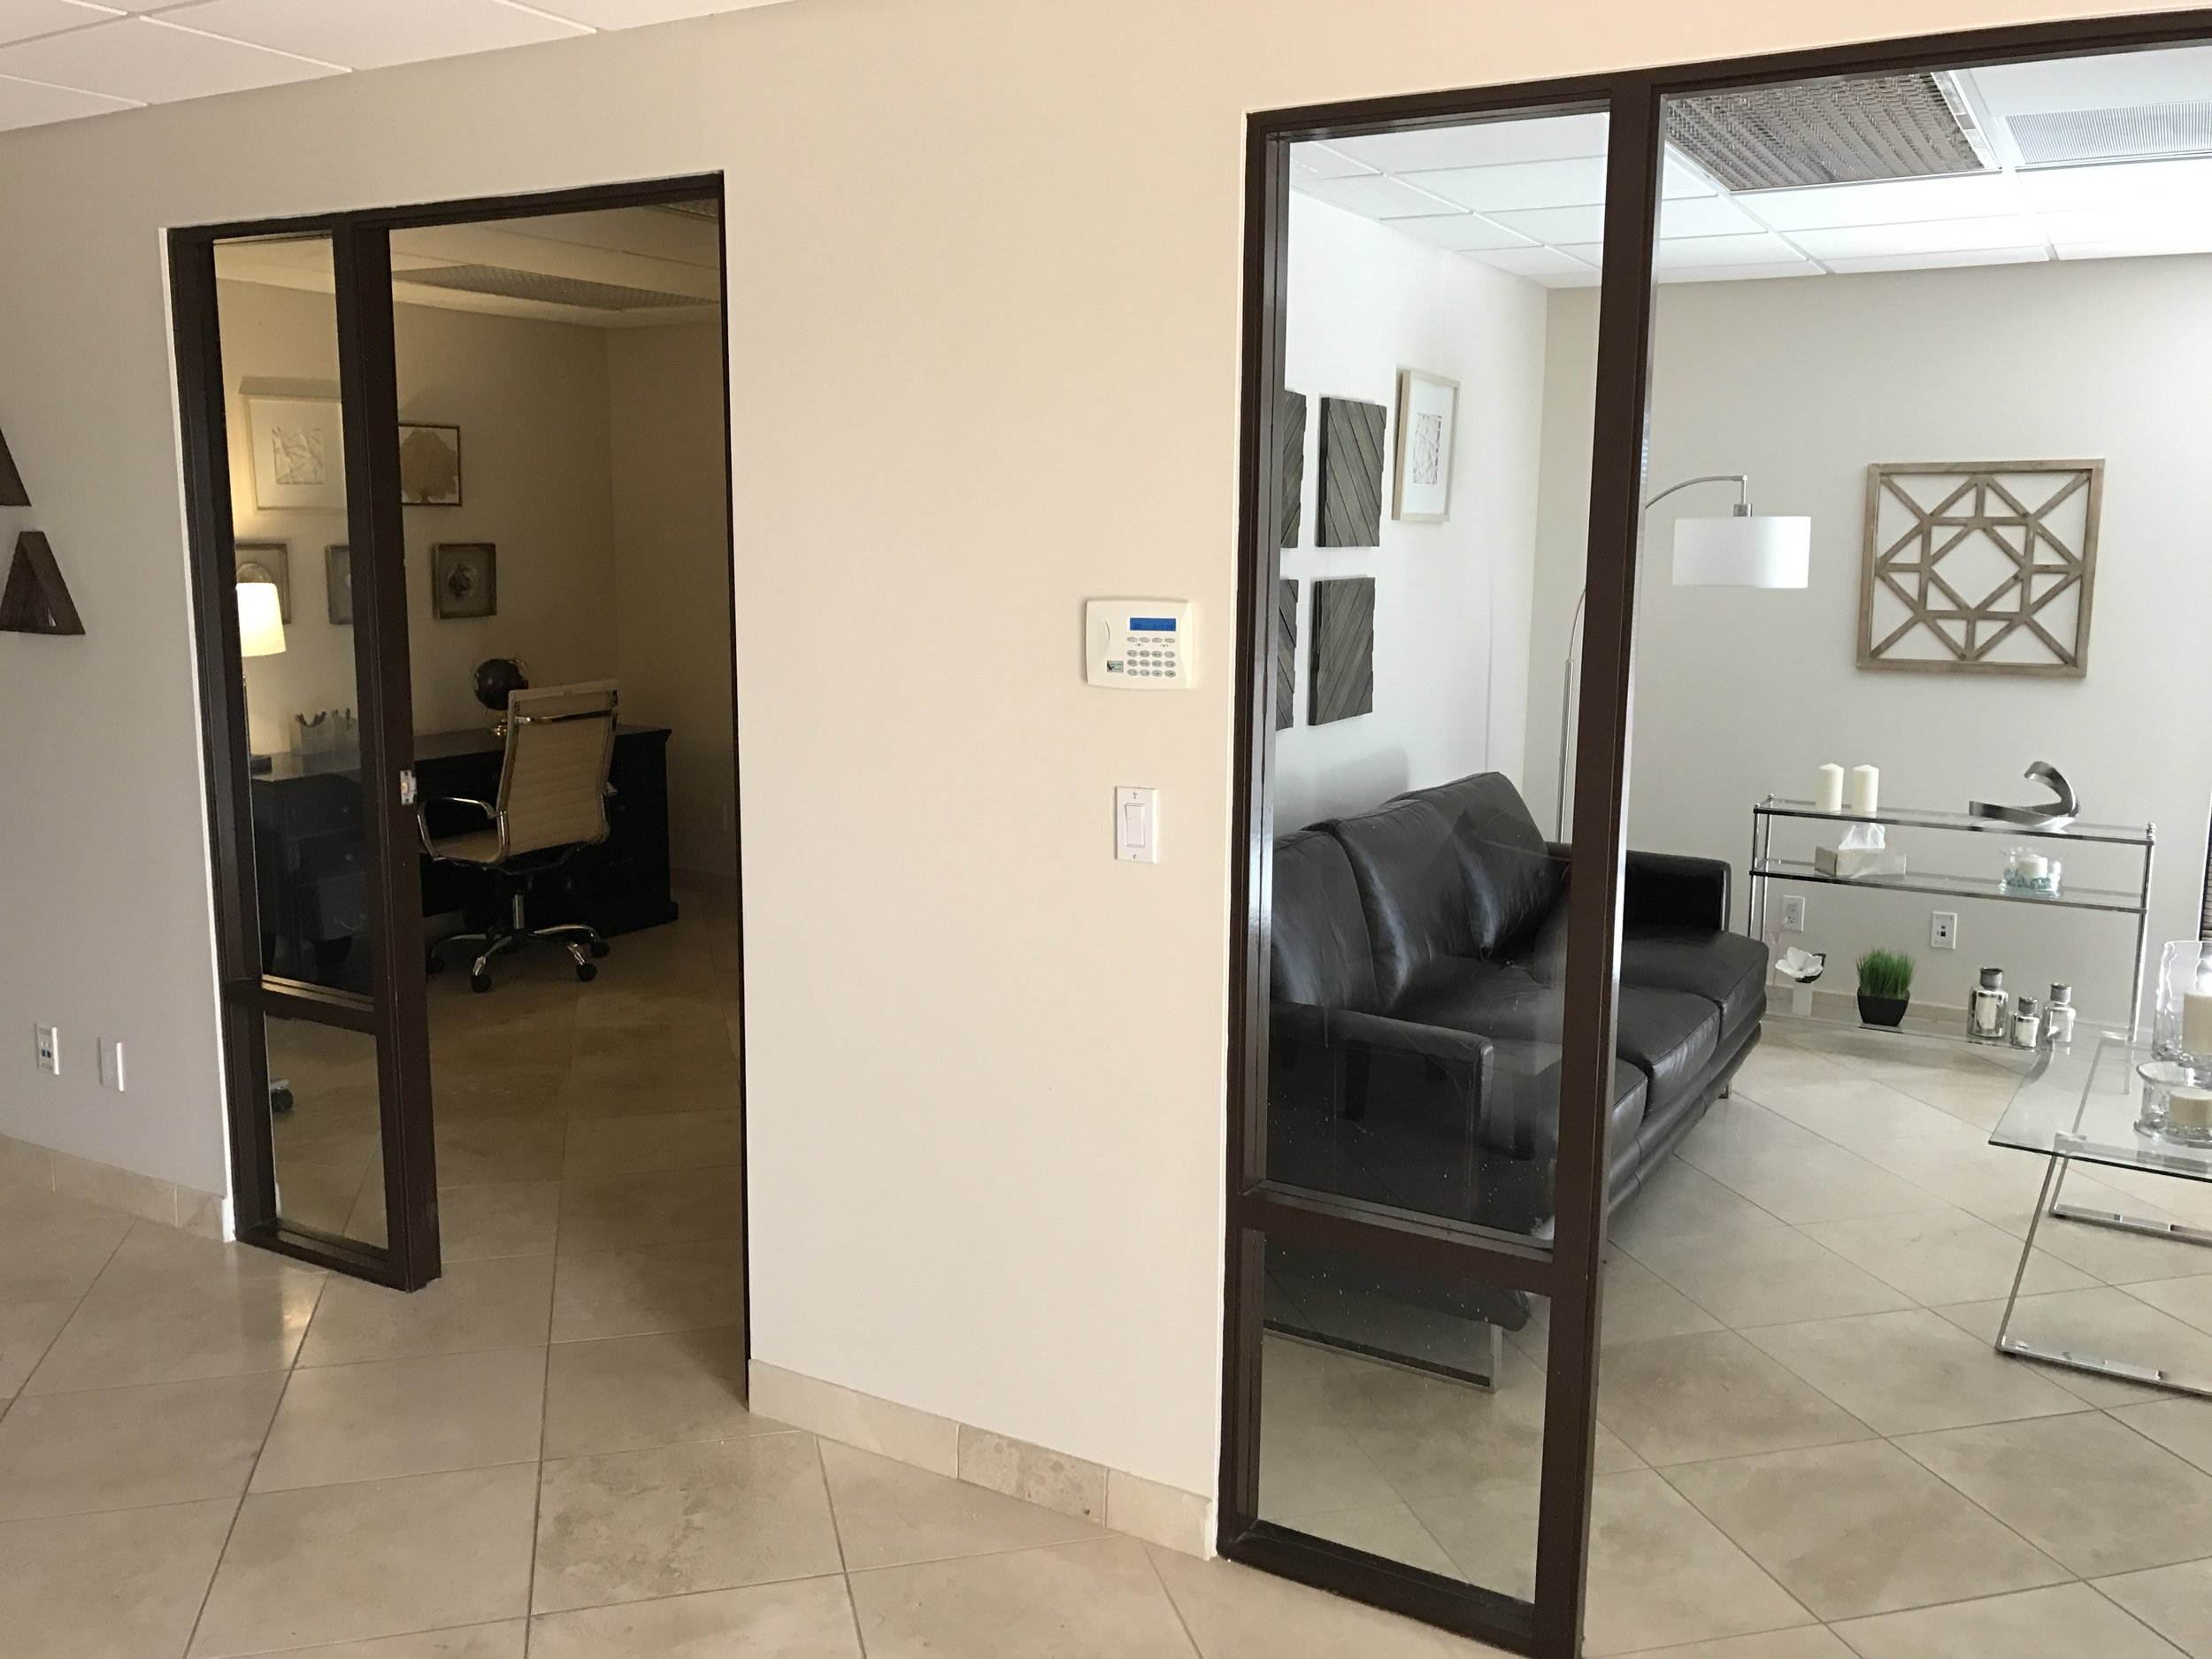 Tucson psychiatrist office external view of office and private seating area